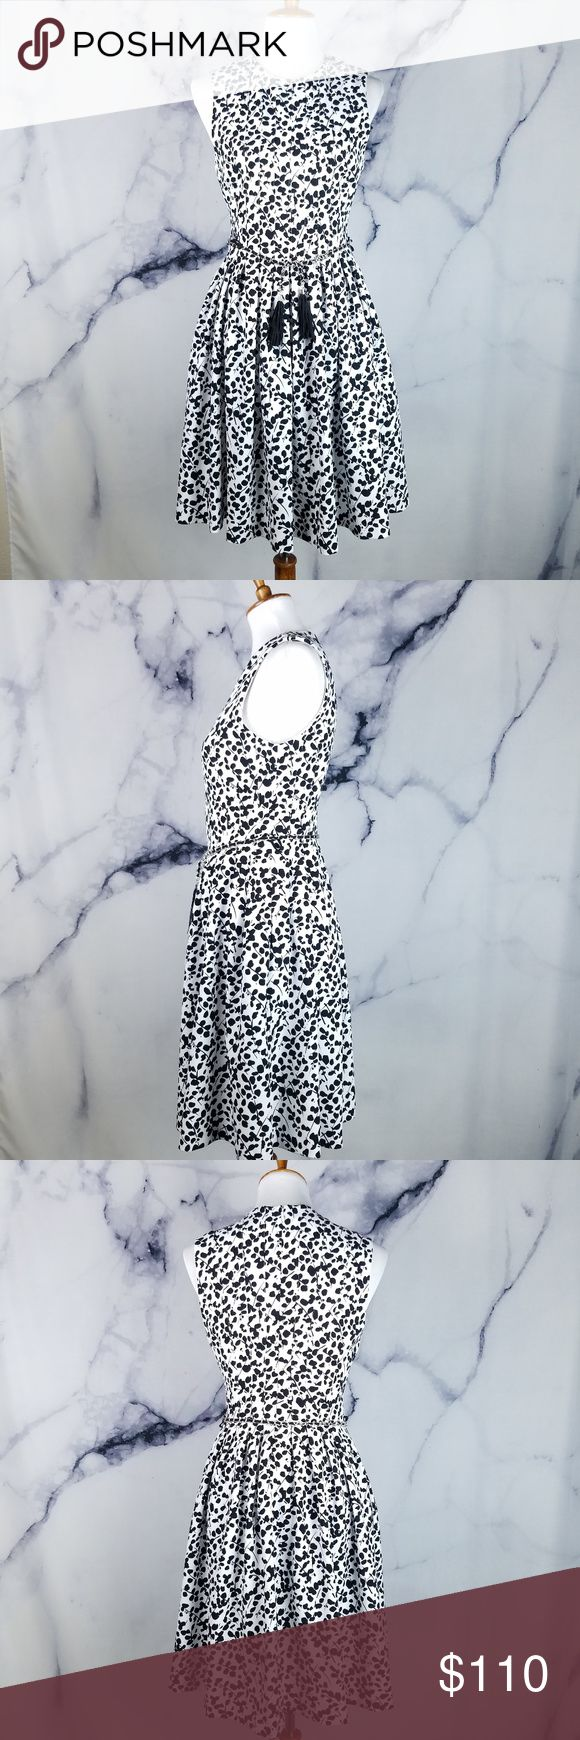 Karl Lagerfeld Paris Dress 6 Black White Leaves Gorgeous black and white floral/stick/leaves all over print, classic neckline, hidden back zipper closure, sleeveless, pleated skirt, tassel chain belt, a-line dress made by Karl Lagerfeld Paris in women's size 6. In great previously owned condition - no flaws. Please see pictures for details.  Approximate Measurements:  Armpit to Armpit: 16.5 inches (flat lay) 33 inches around Waist: 14 inches (flat lay) 28 inches around Length: 38 inches  If…